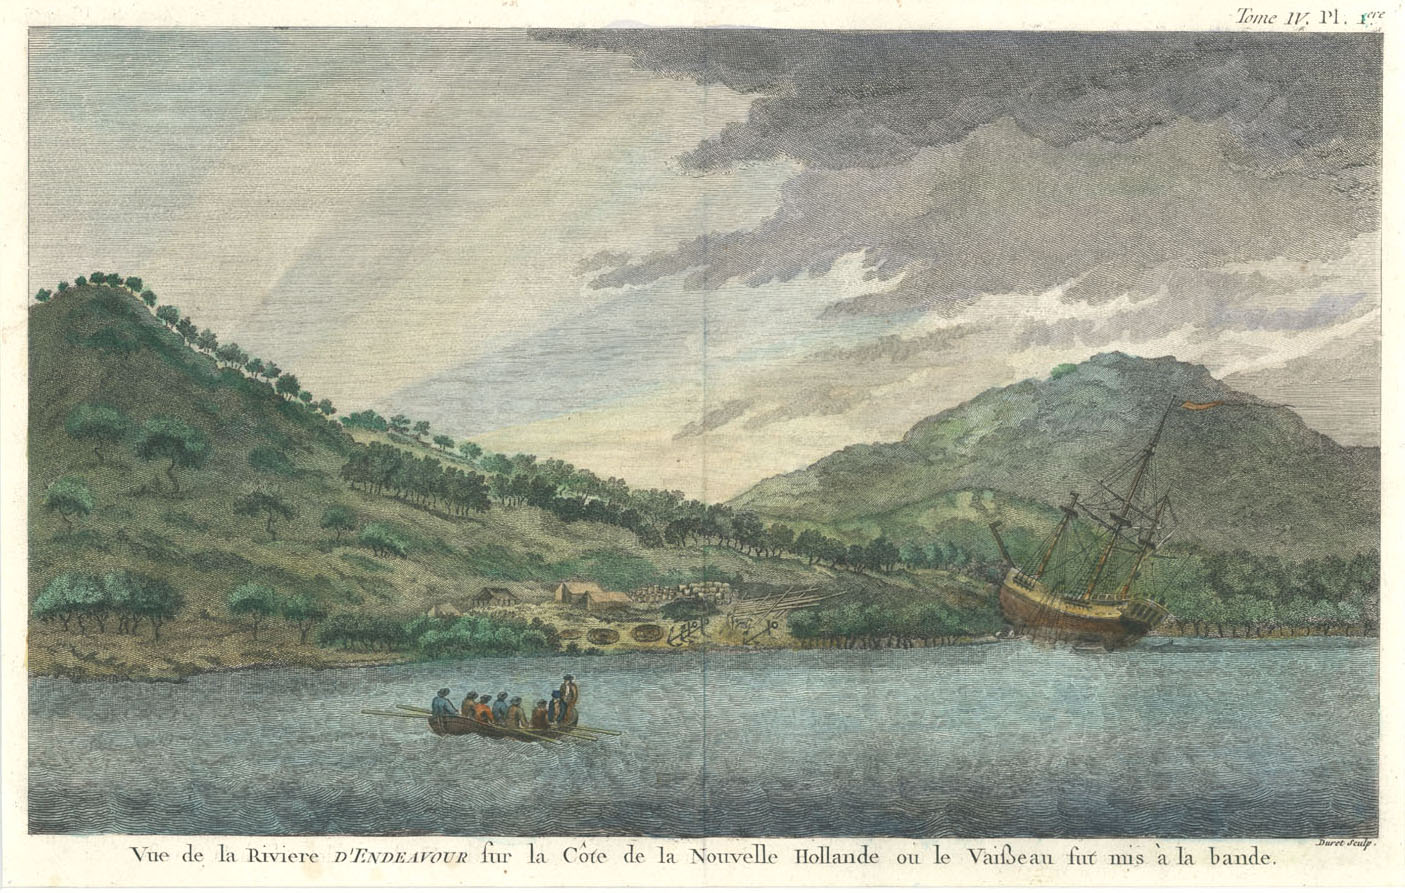 Captain Cook's 'Endeavour' aground for repairs (near Cooktown). c1773